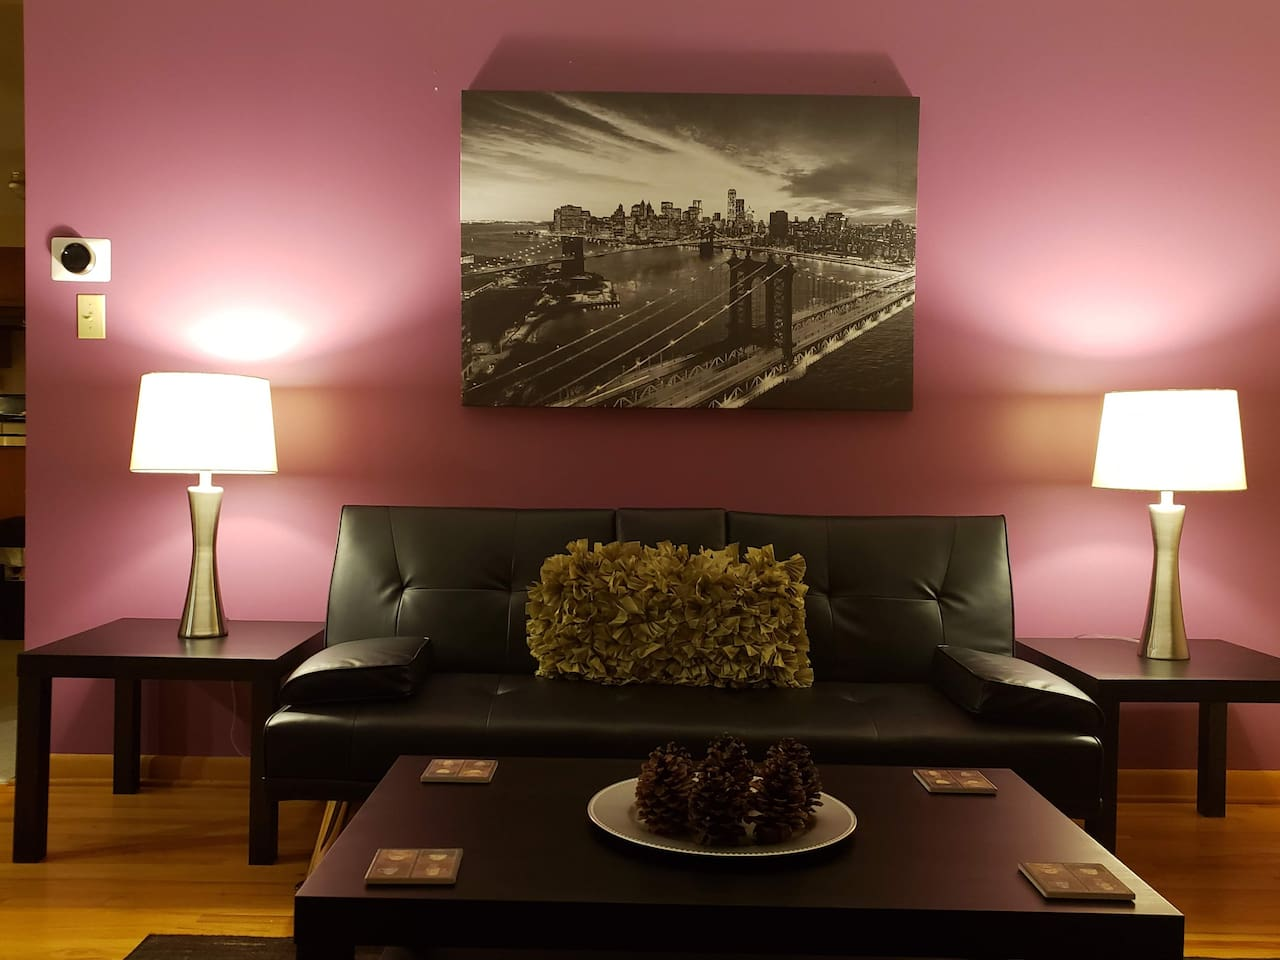 We've painted our living room with a splash of purple for your visual delight and pleasure.